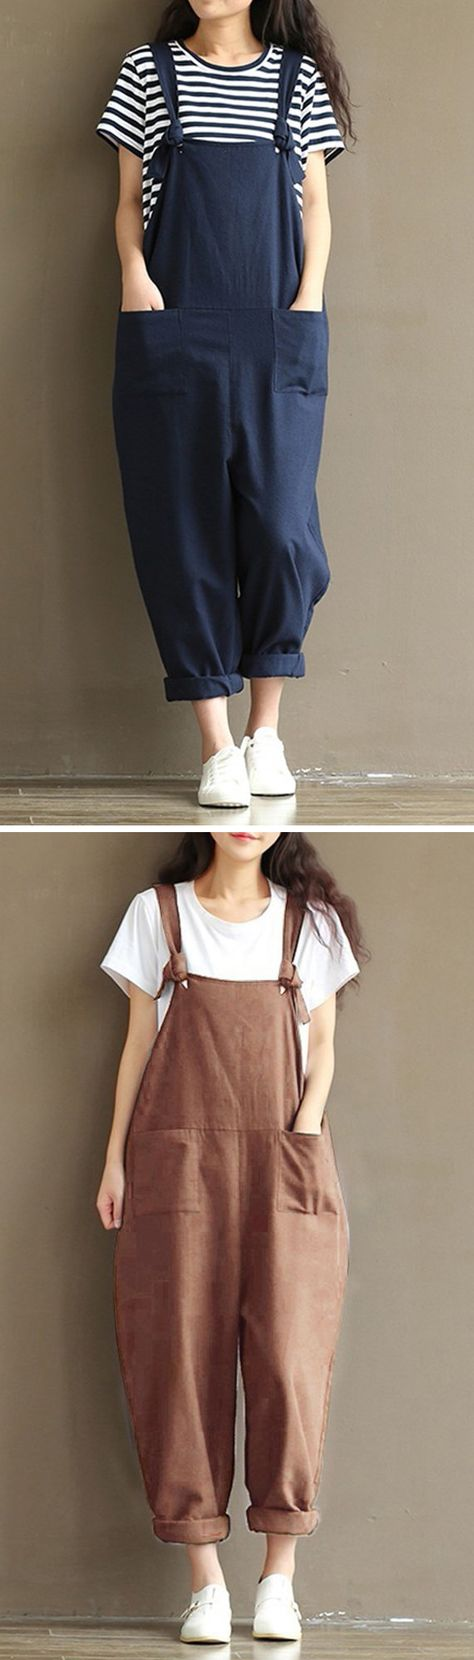 Fashion overalls for women 48